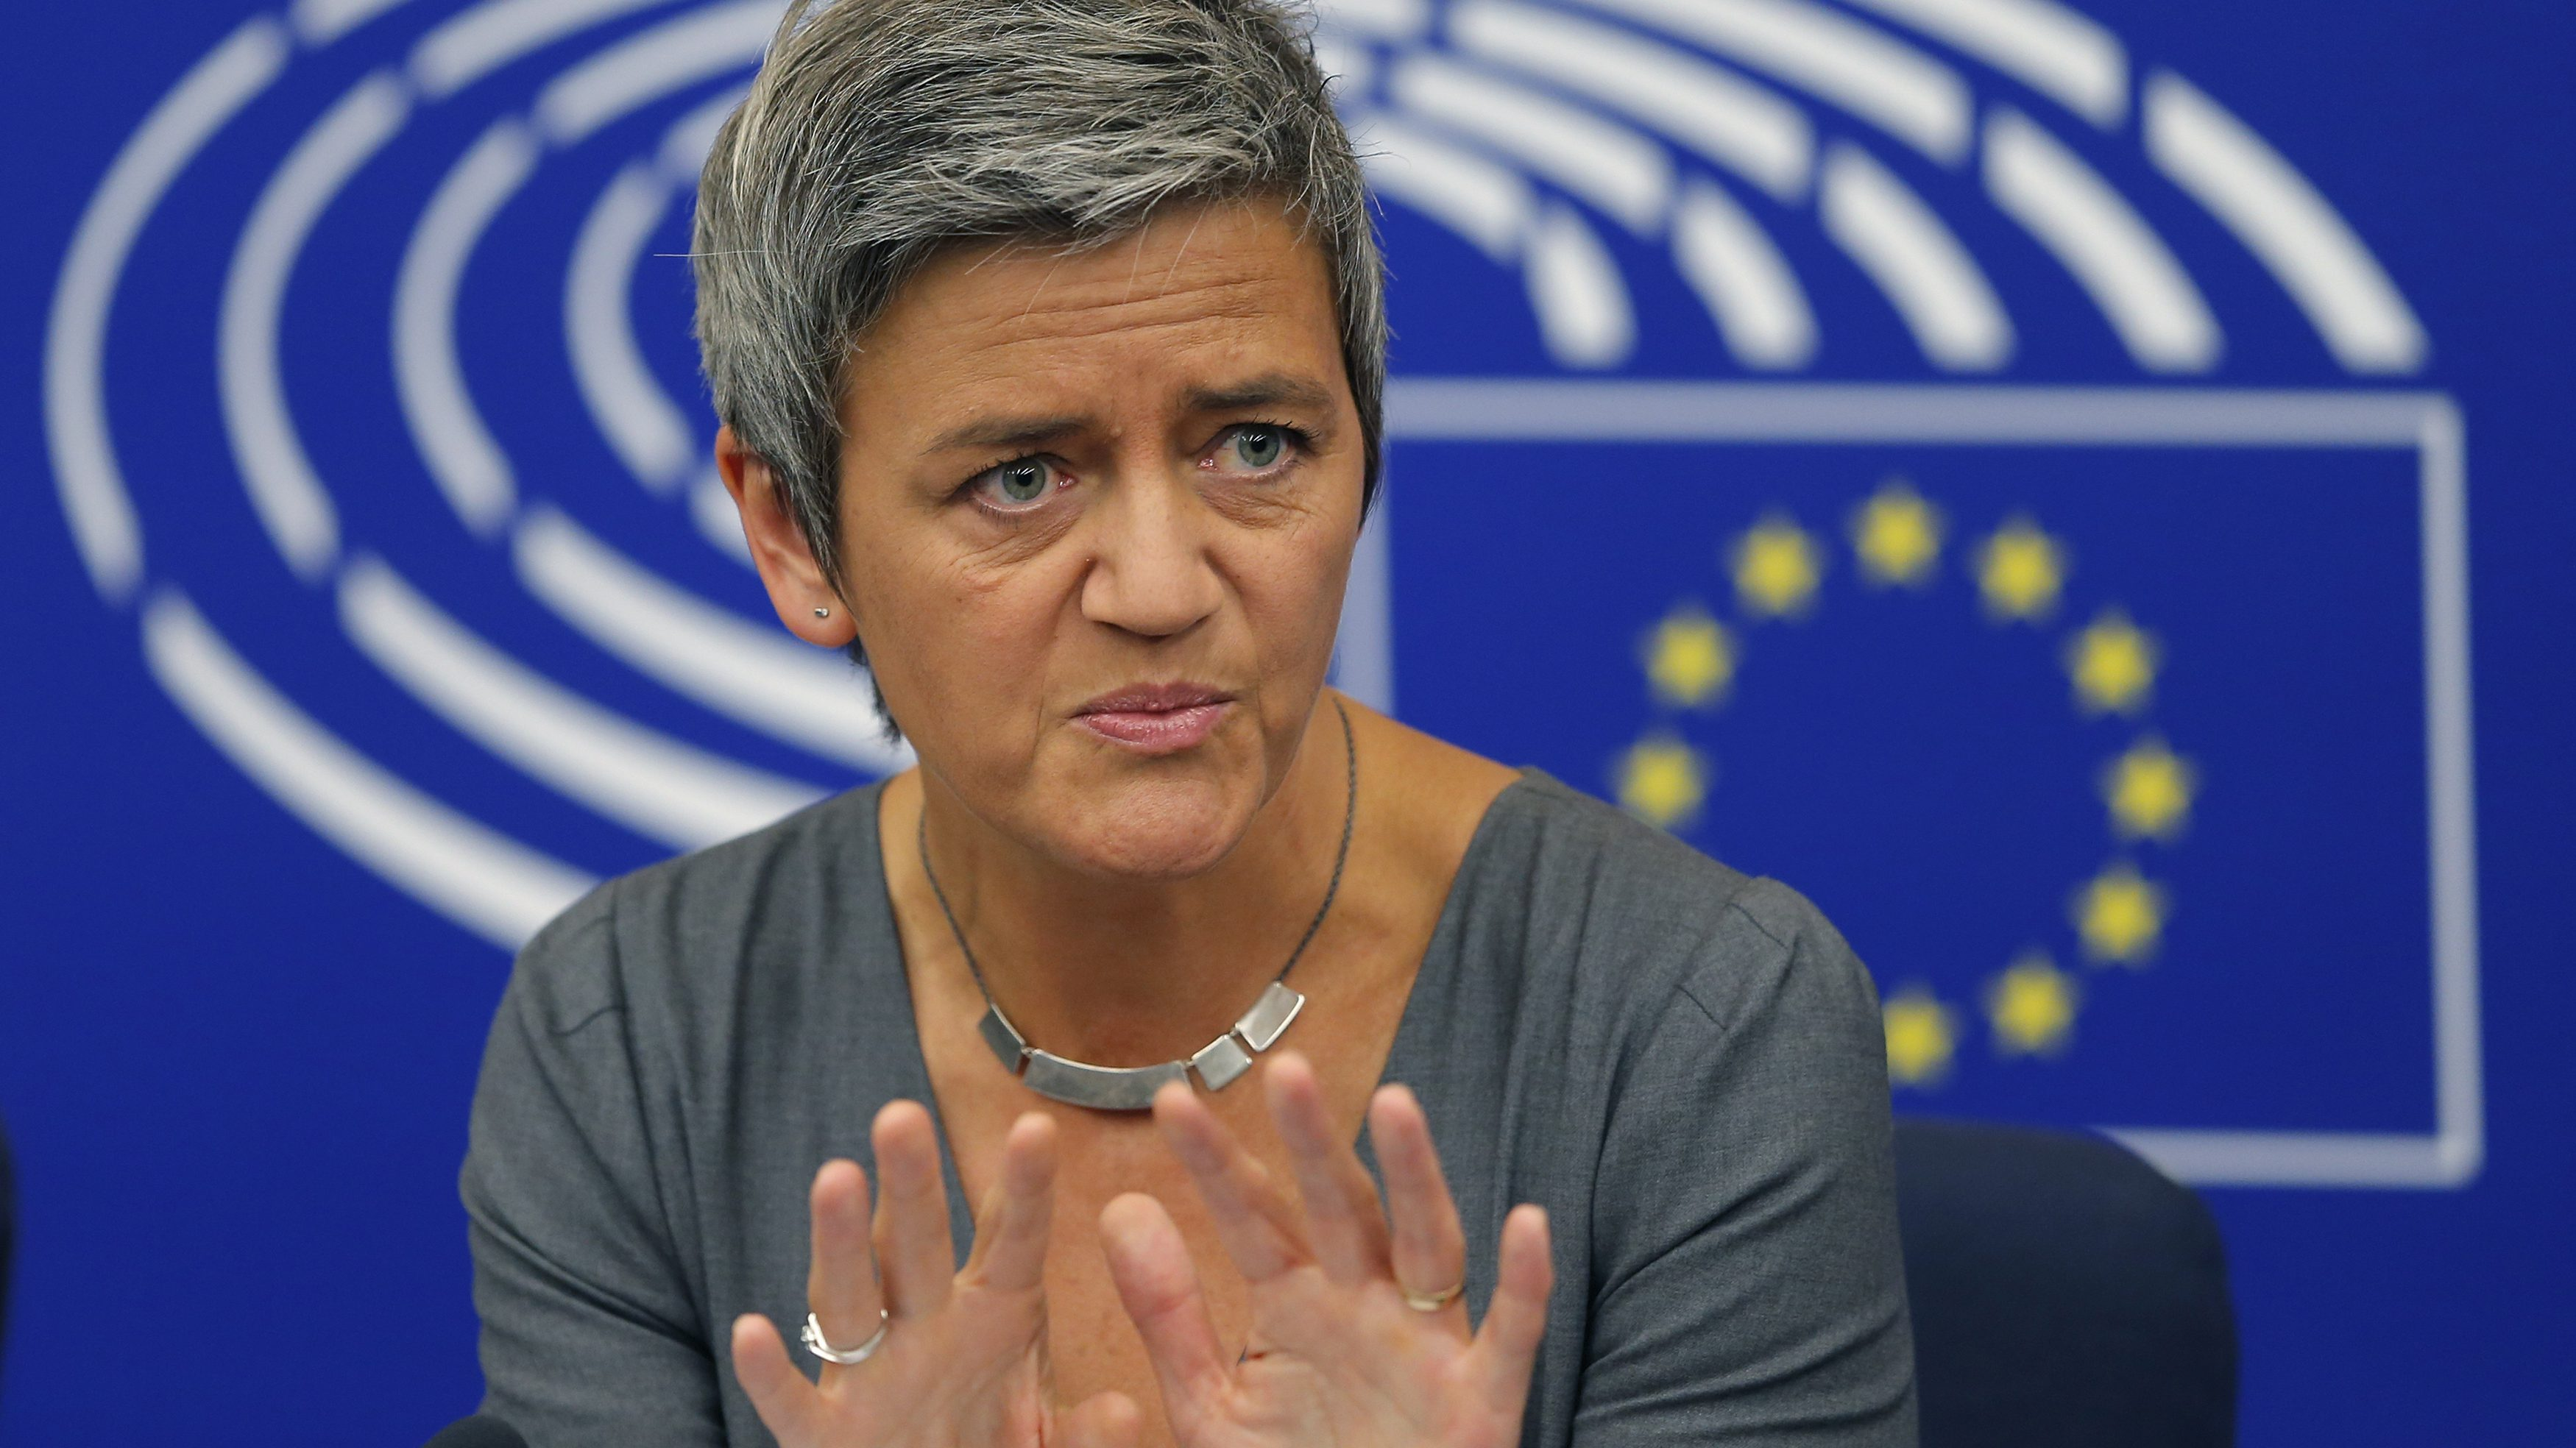 European Competition Commissioner Vestager holds a news conference on the takeover of Alstom?s power businesses by U.S. conglomerate General Electric at the European Parliament in Strasbourg